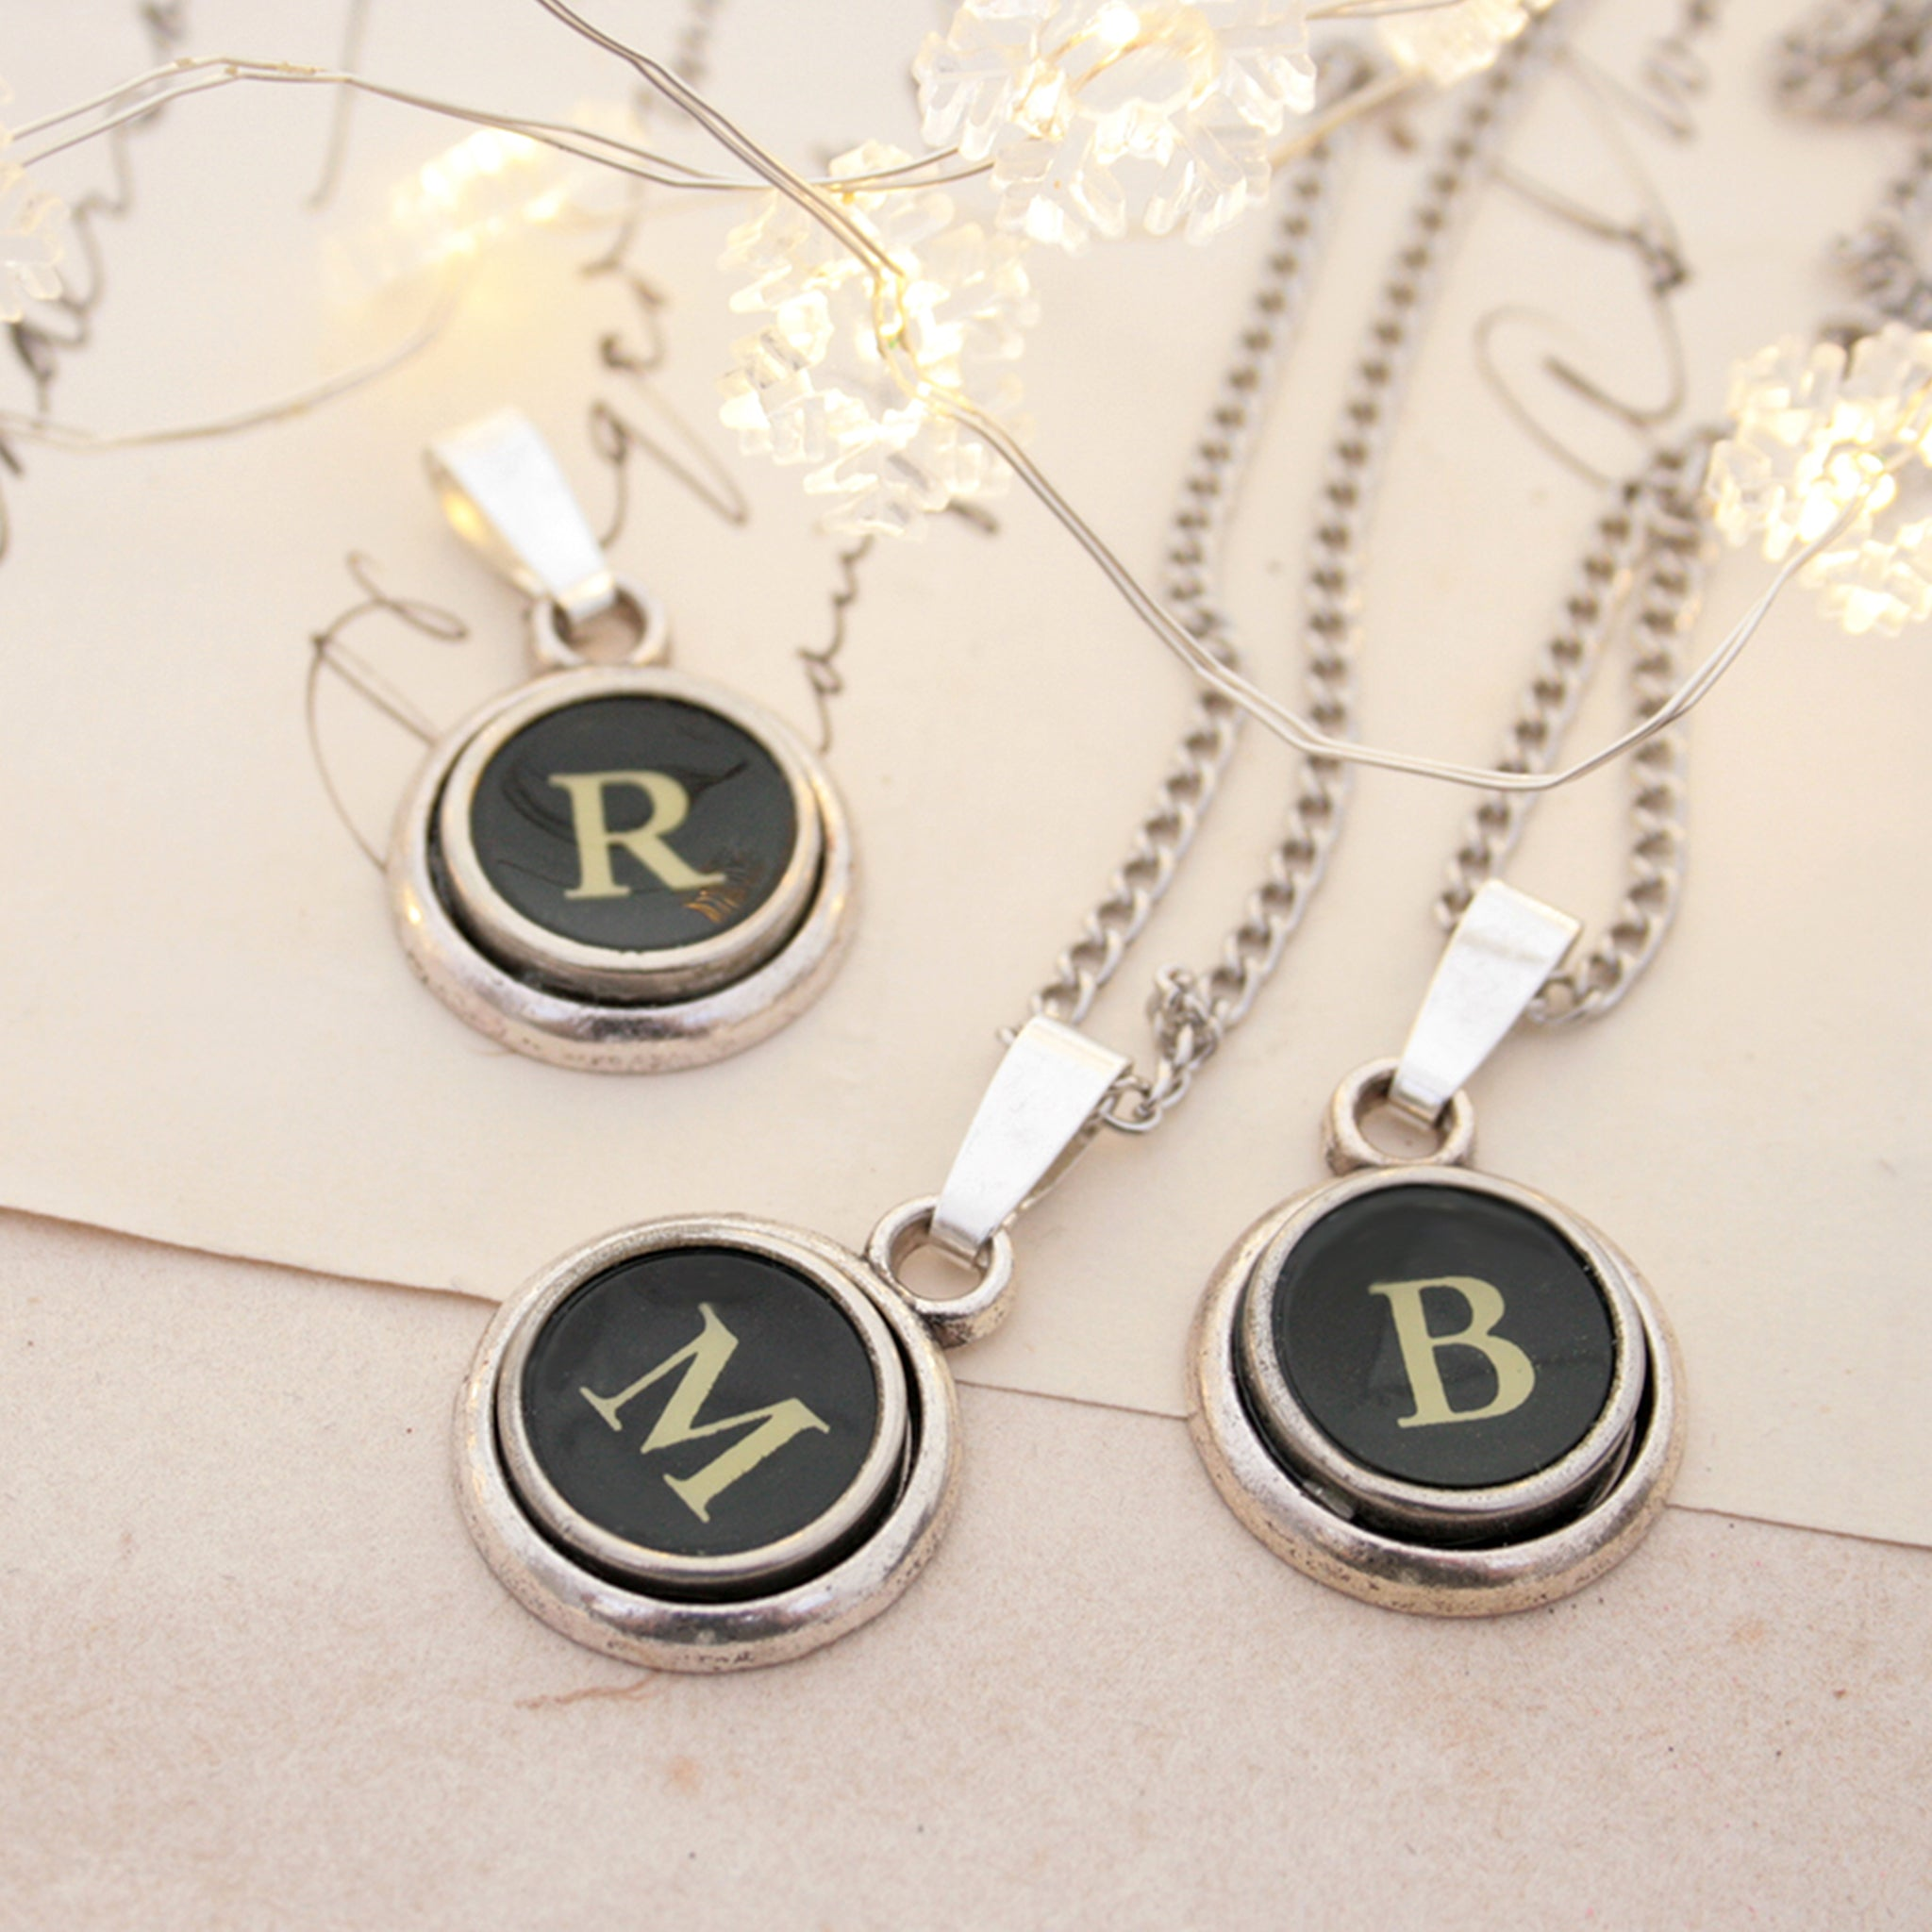 R letter, M letter, B letter typewriter necklaces made of real typewriter keys